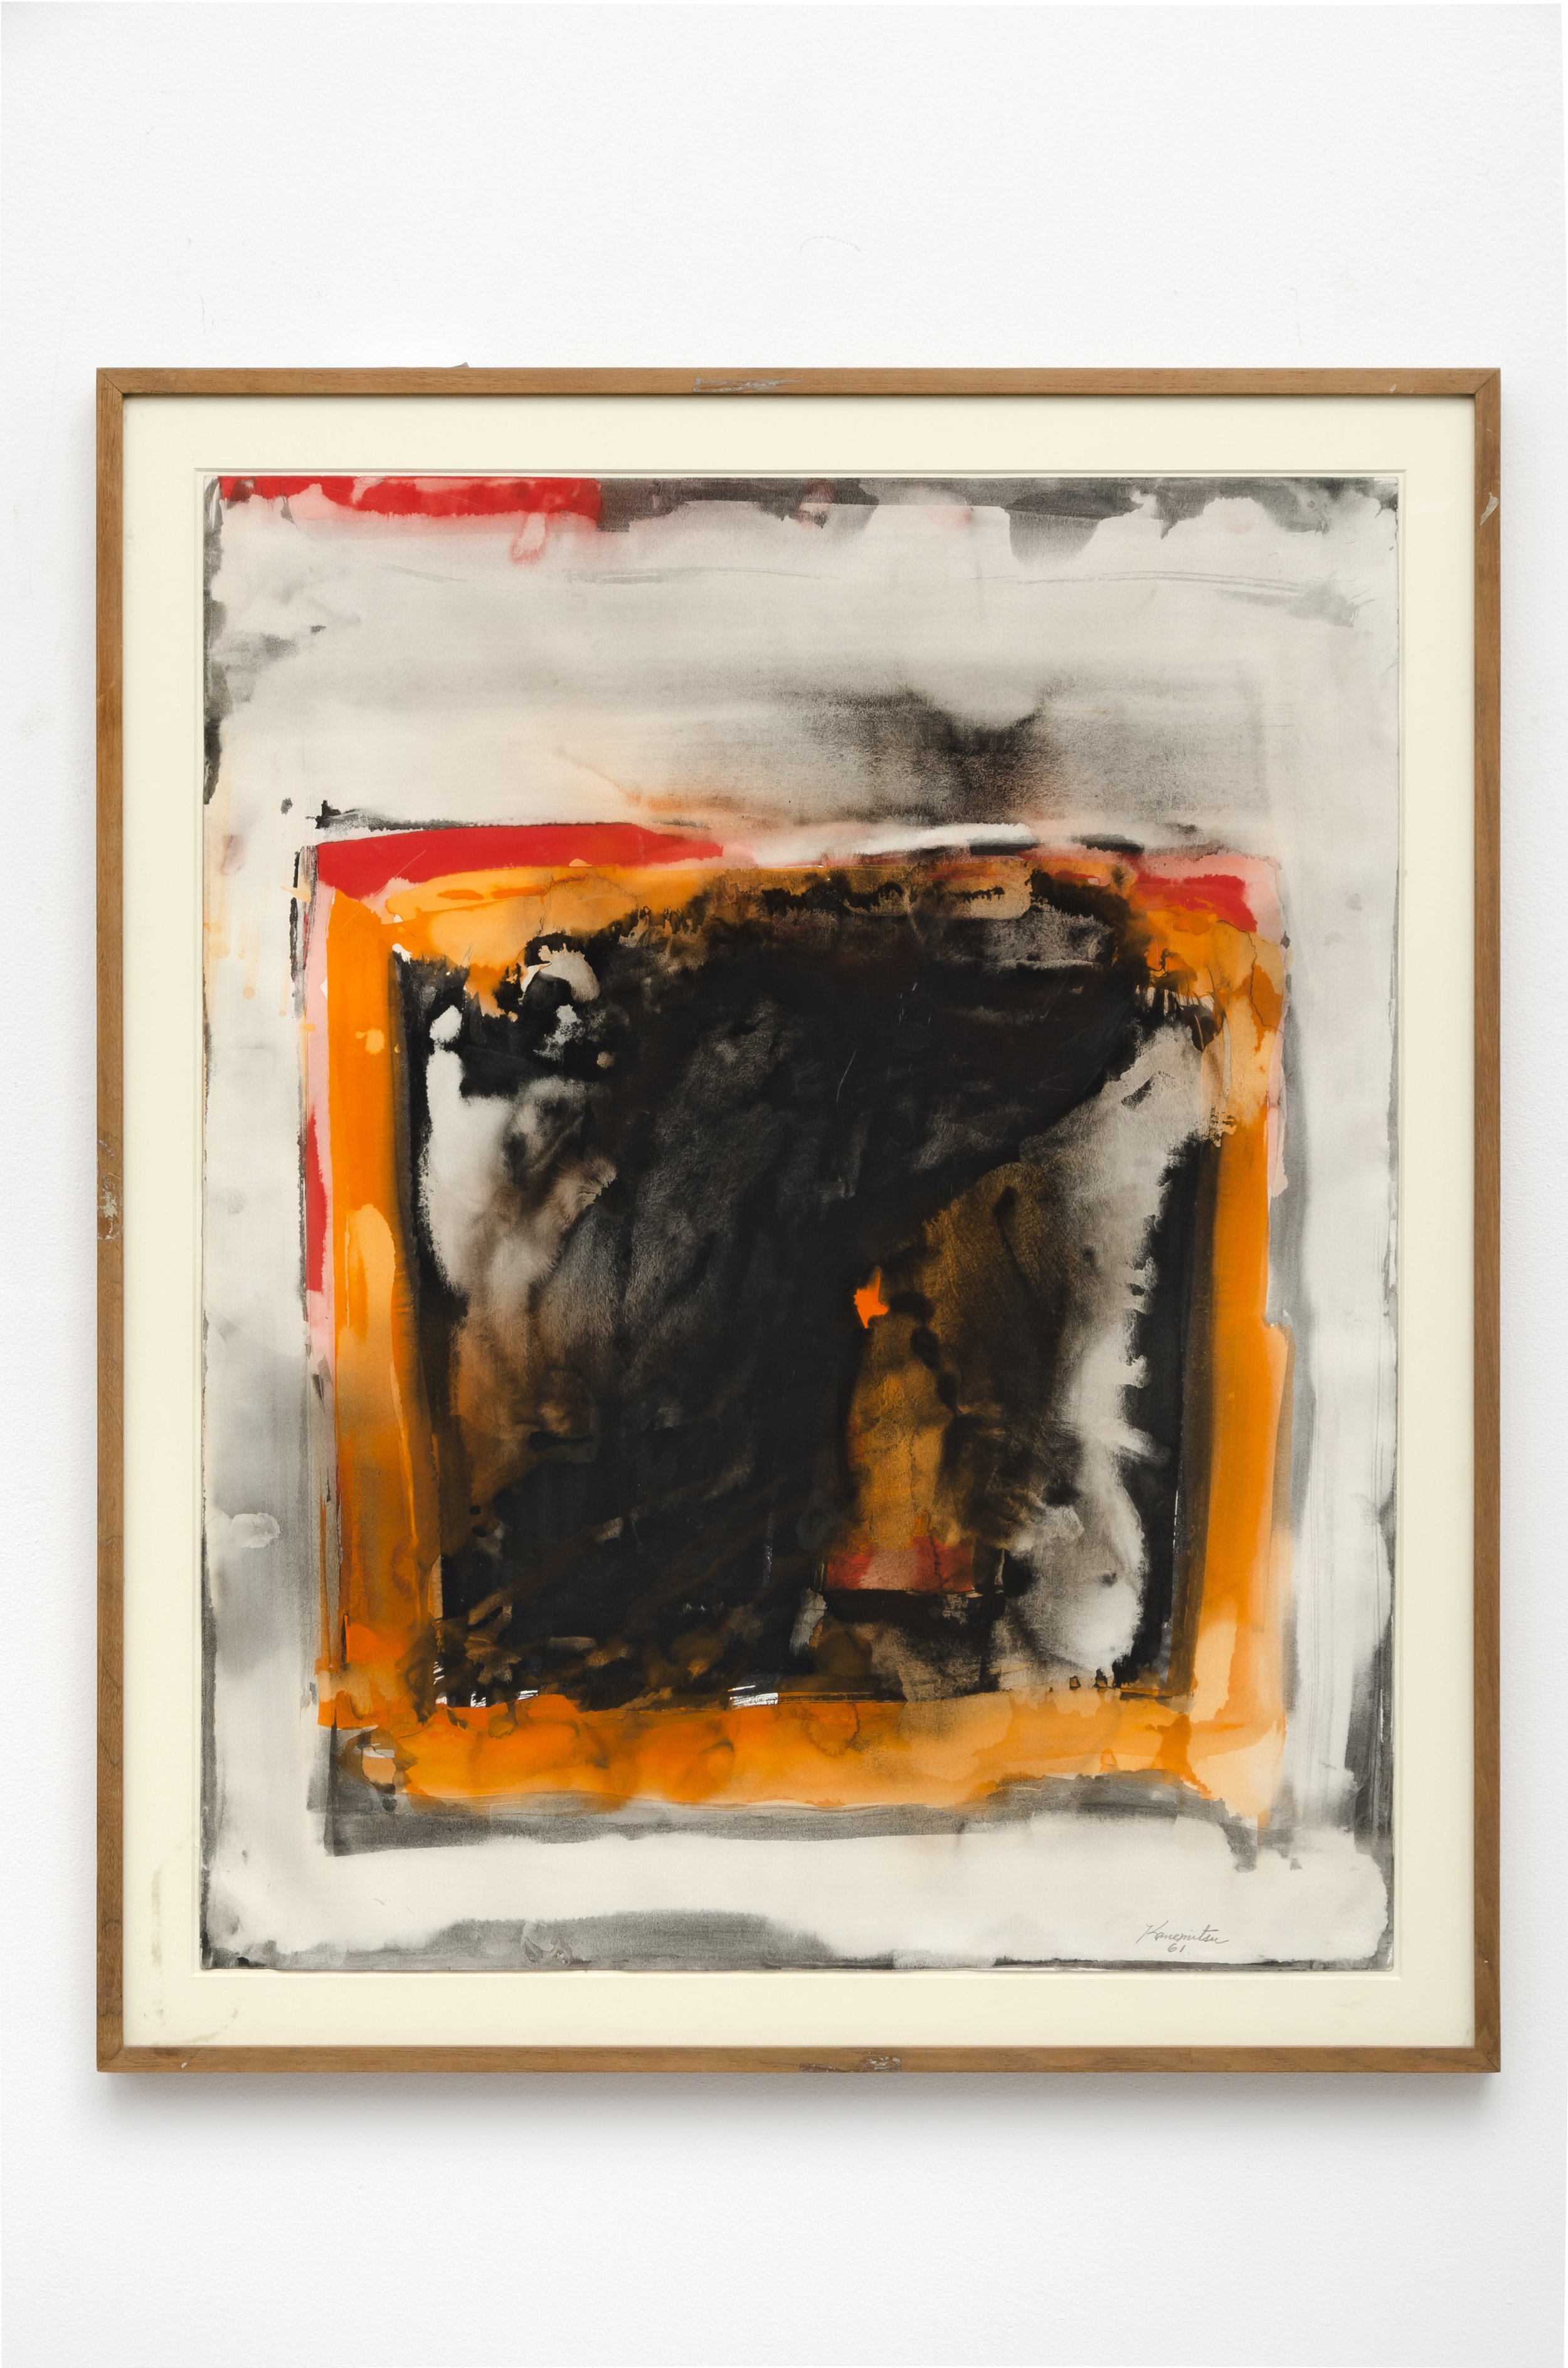 Untitled   1961  watercolor on paper  29 x 23 inches, 73.7 x 58.4 centimeters